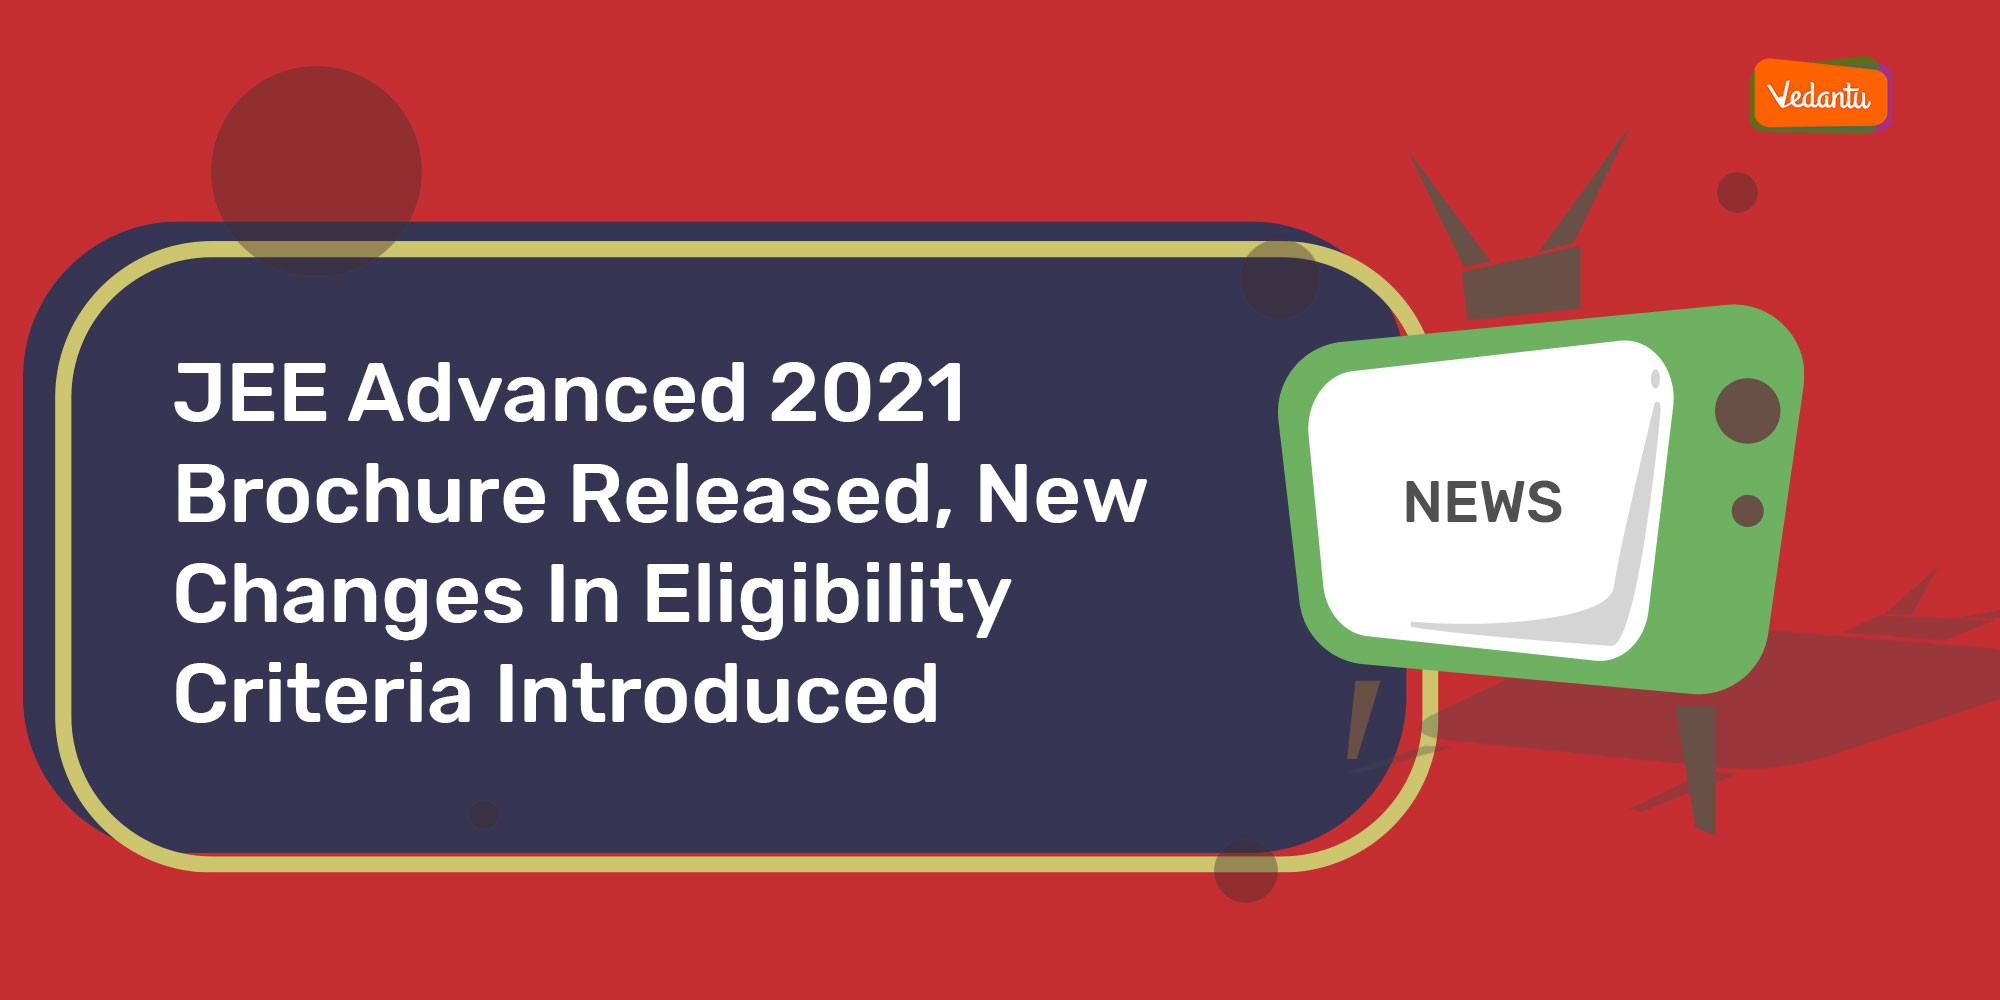 JEE Advanced 2021 Brochure Released, New Changes In Eligibility Criteria Introduced